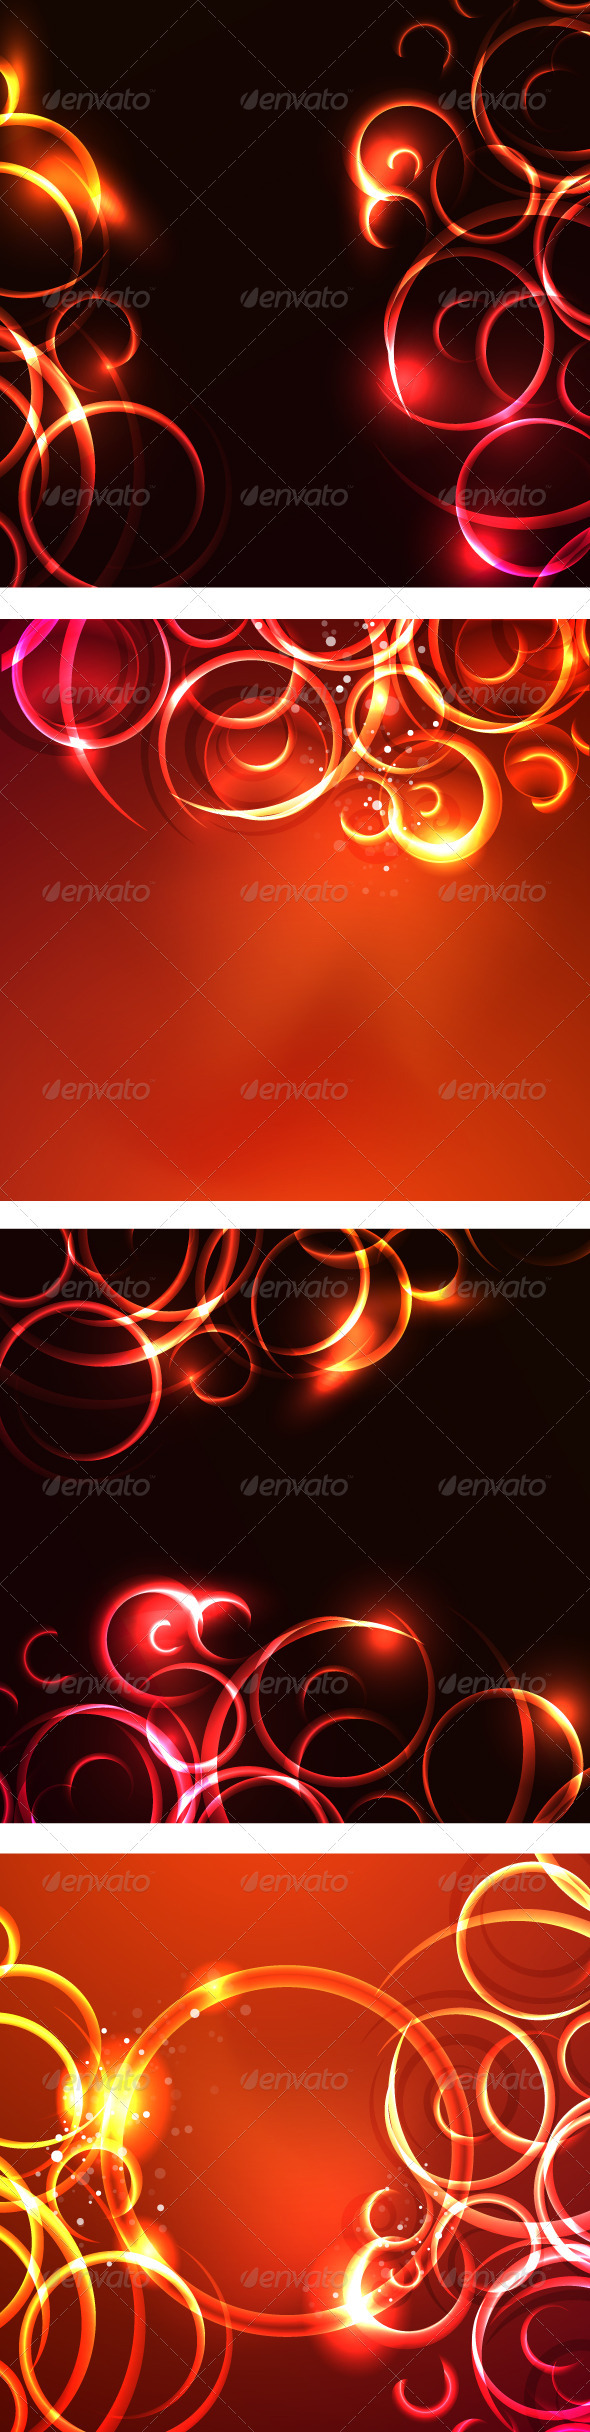 Glowing Swirl Vector Backgrounds - Backgrounds Decorative